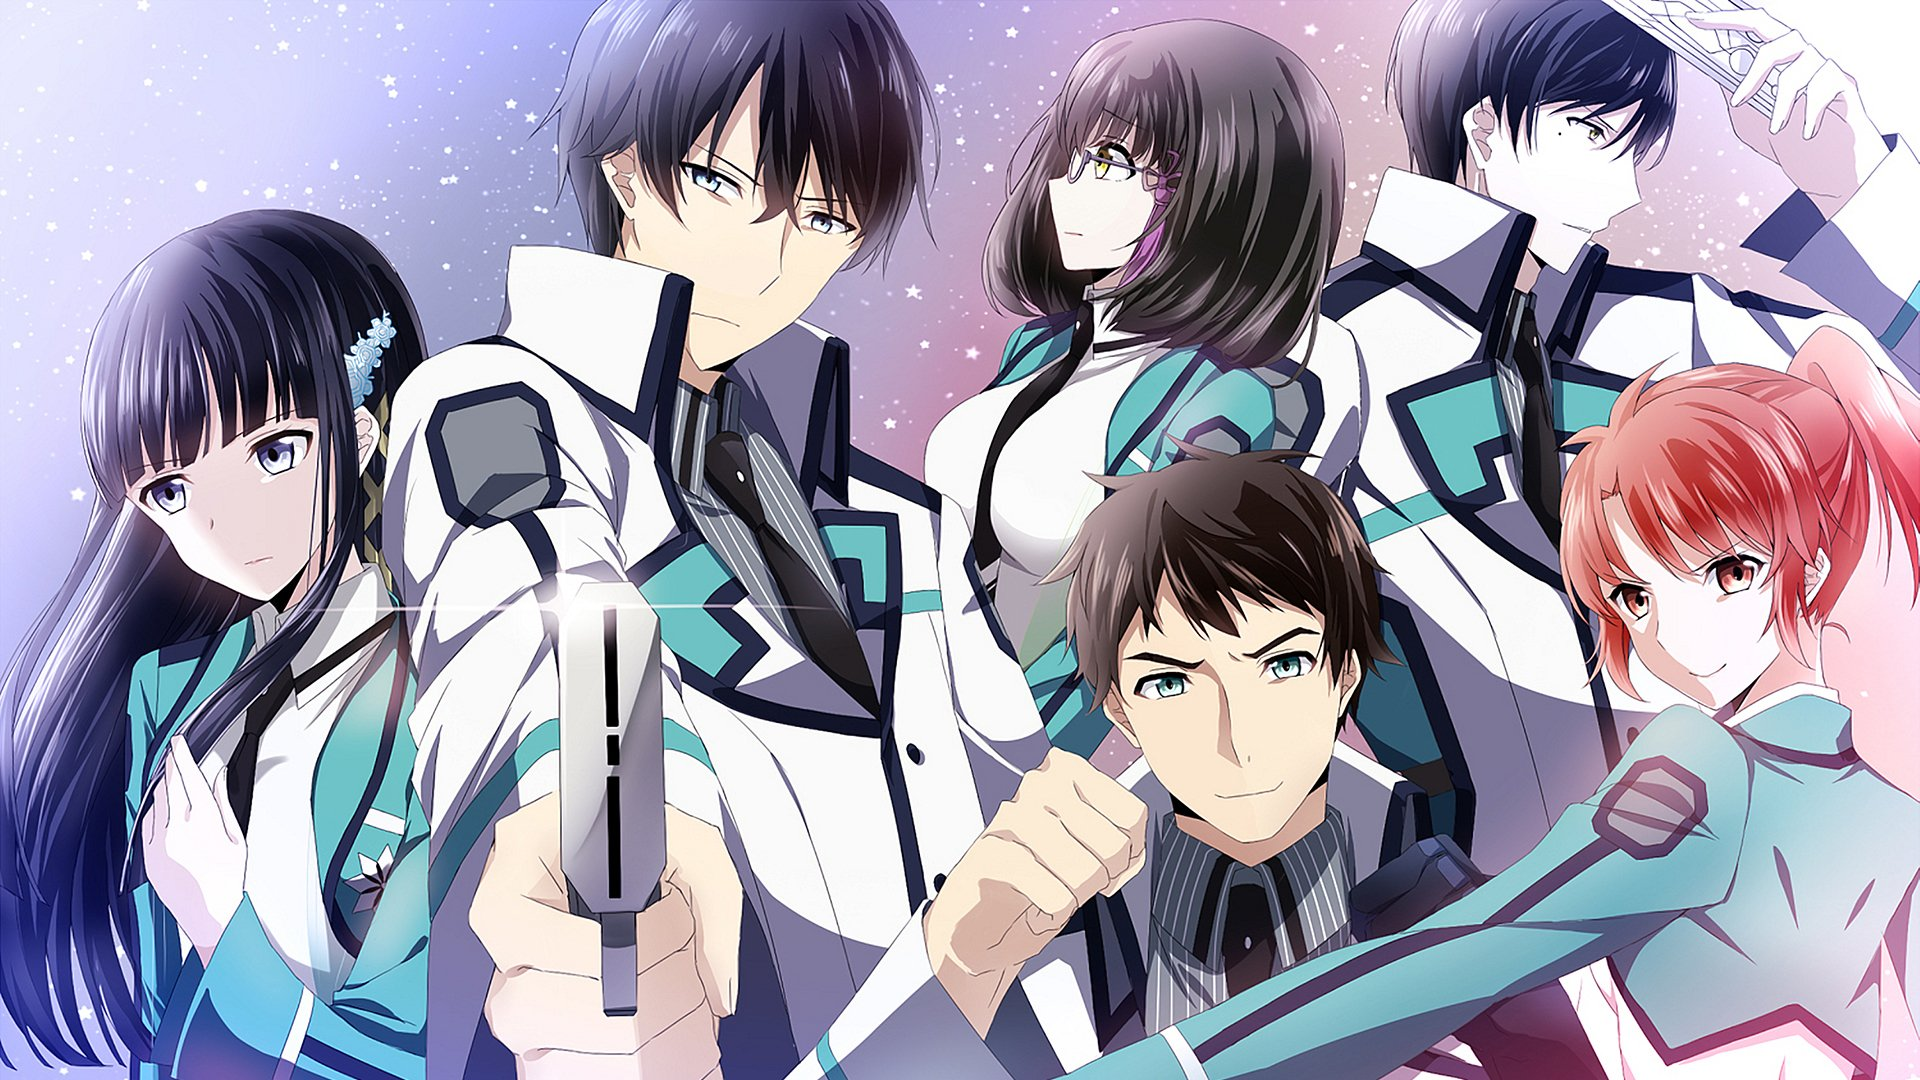 Anime Wallpapers The Irregular At Toko Online Magic Highschool HD 4K Download For Mobile iPhone & PC